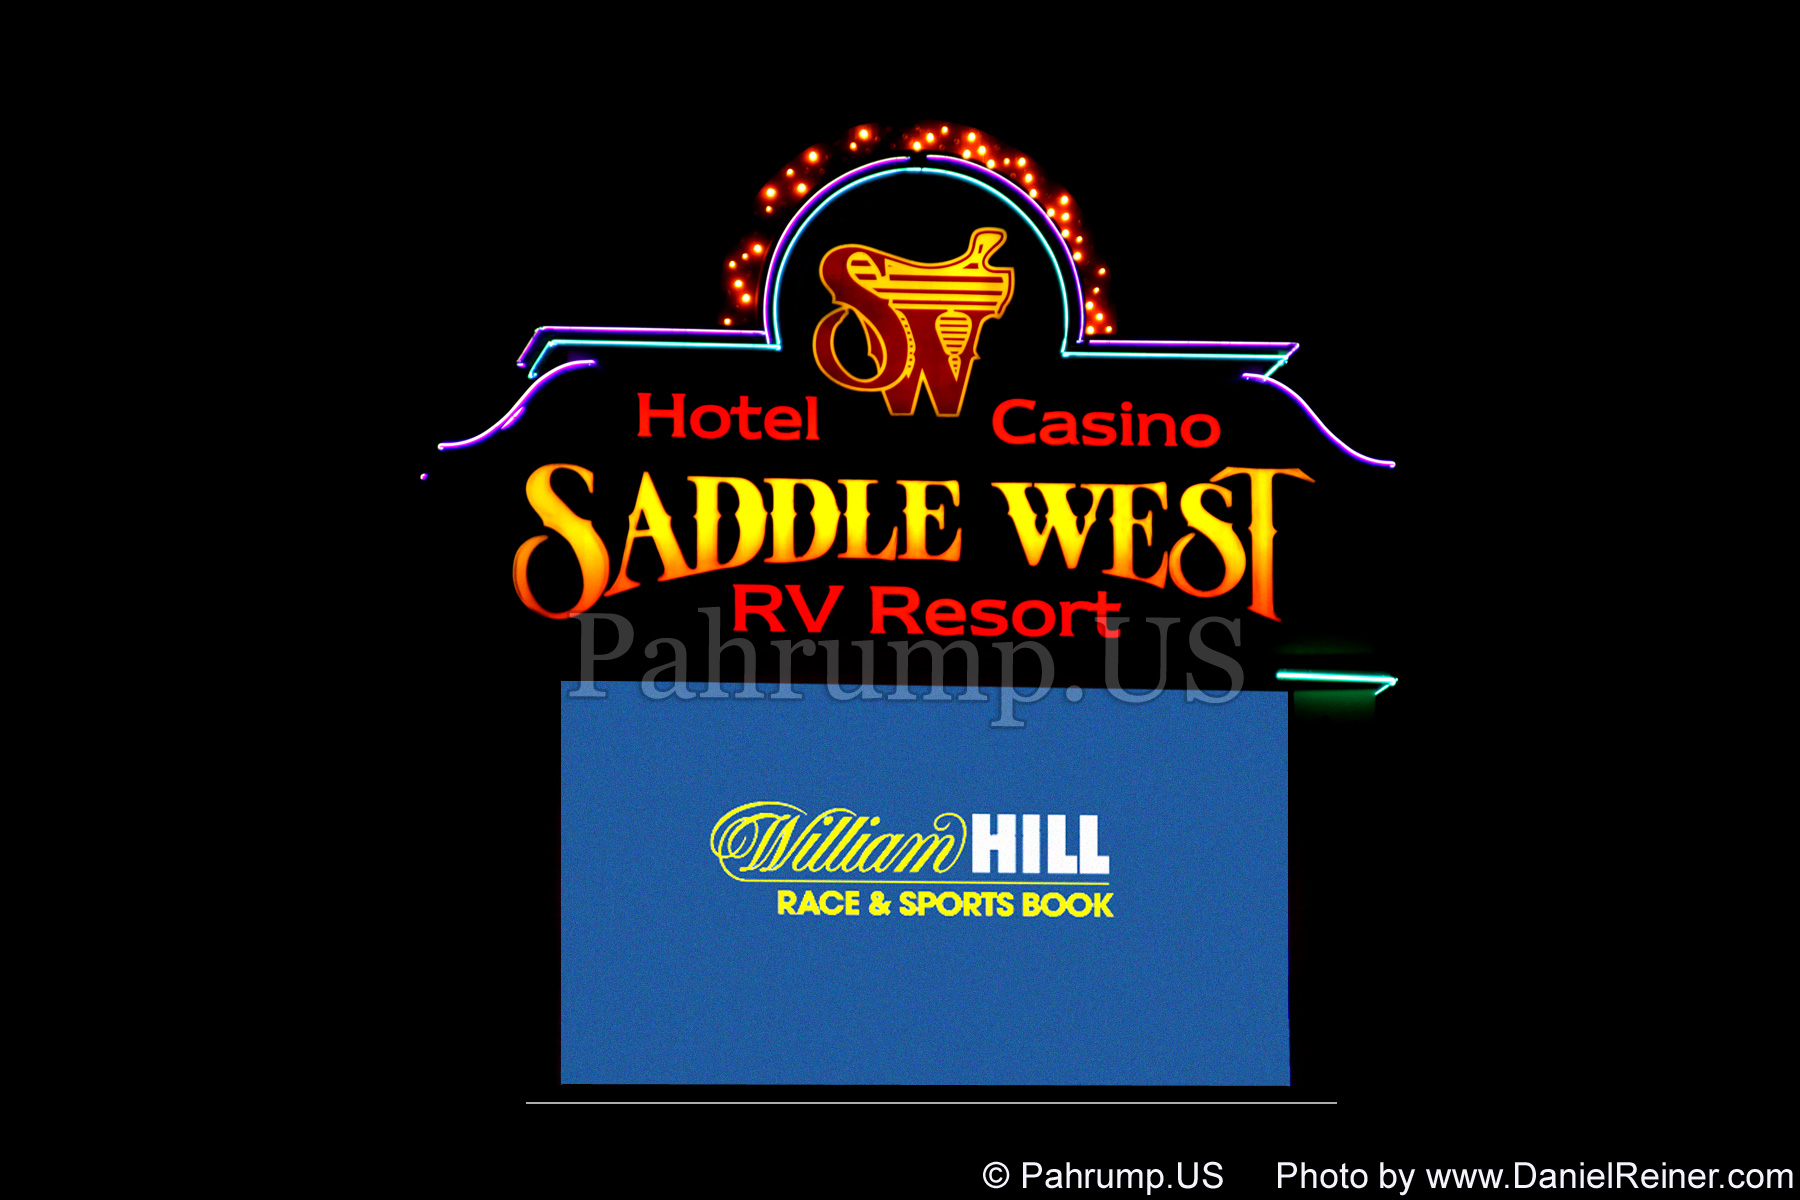 Who can be contacted at saddle west casino on casino on net